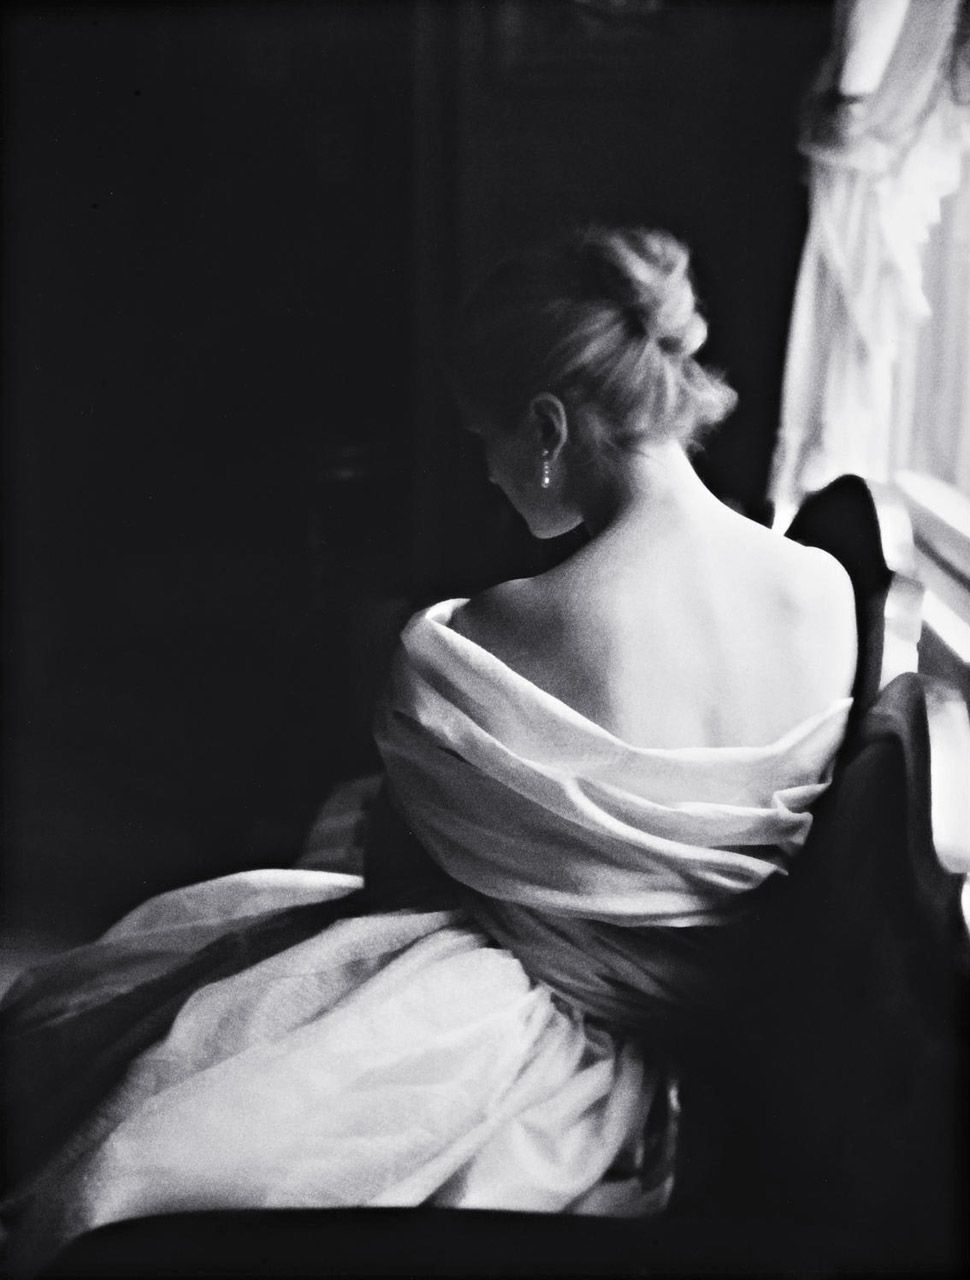 the way the light delicately shines on her bare shoulders, lingering ever so gently.